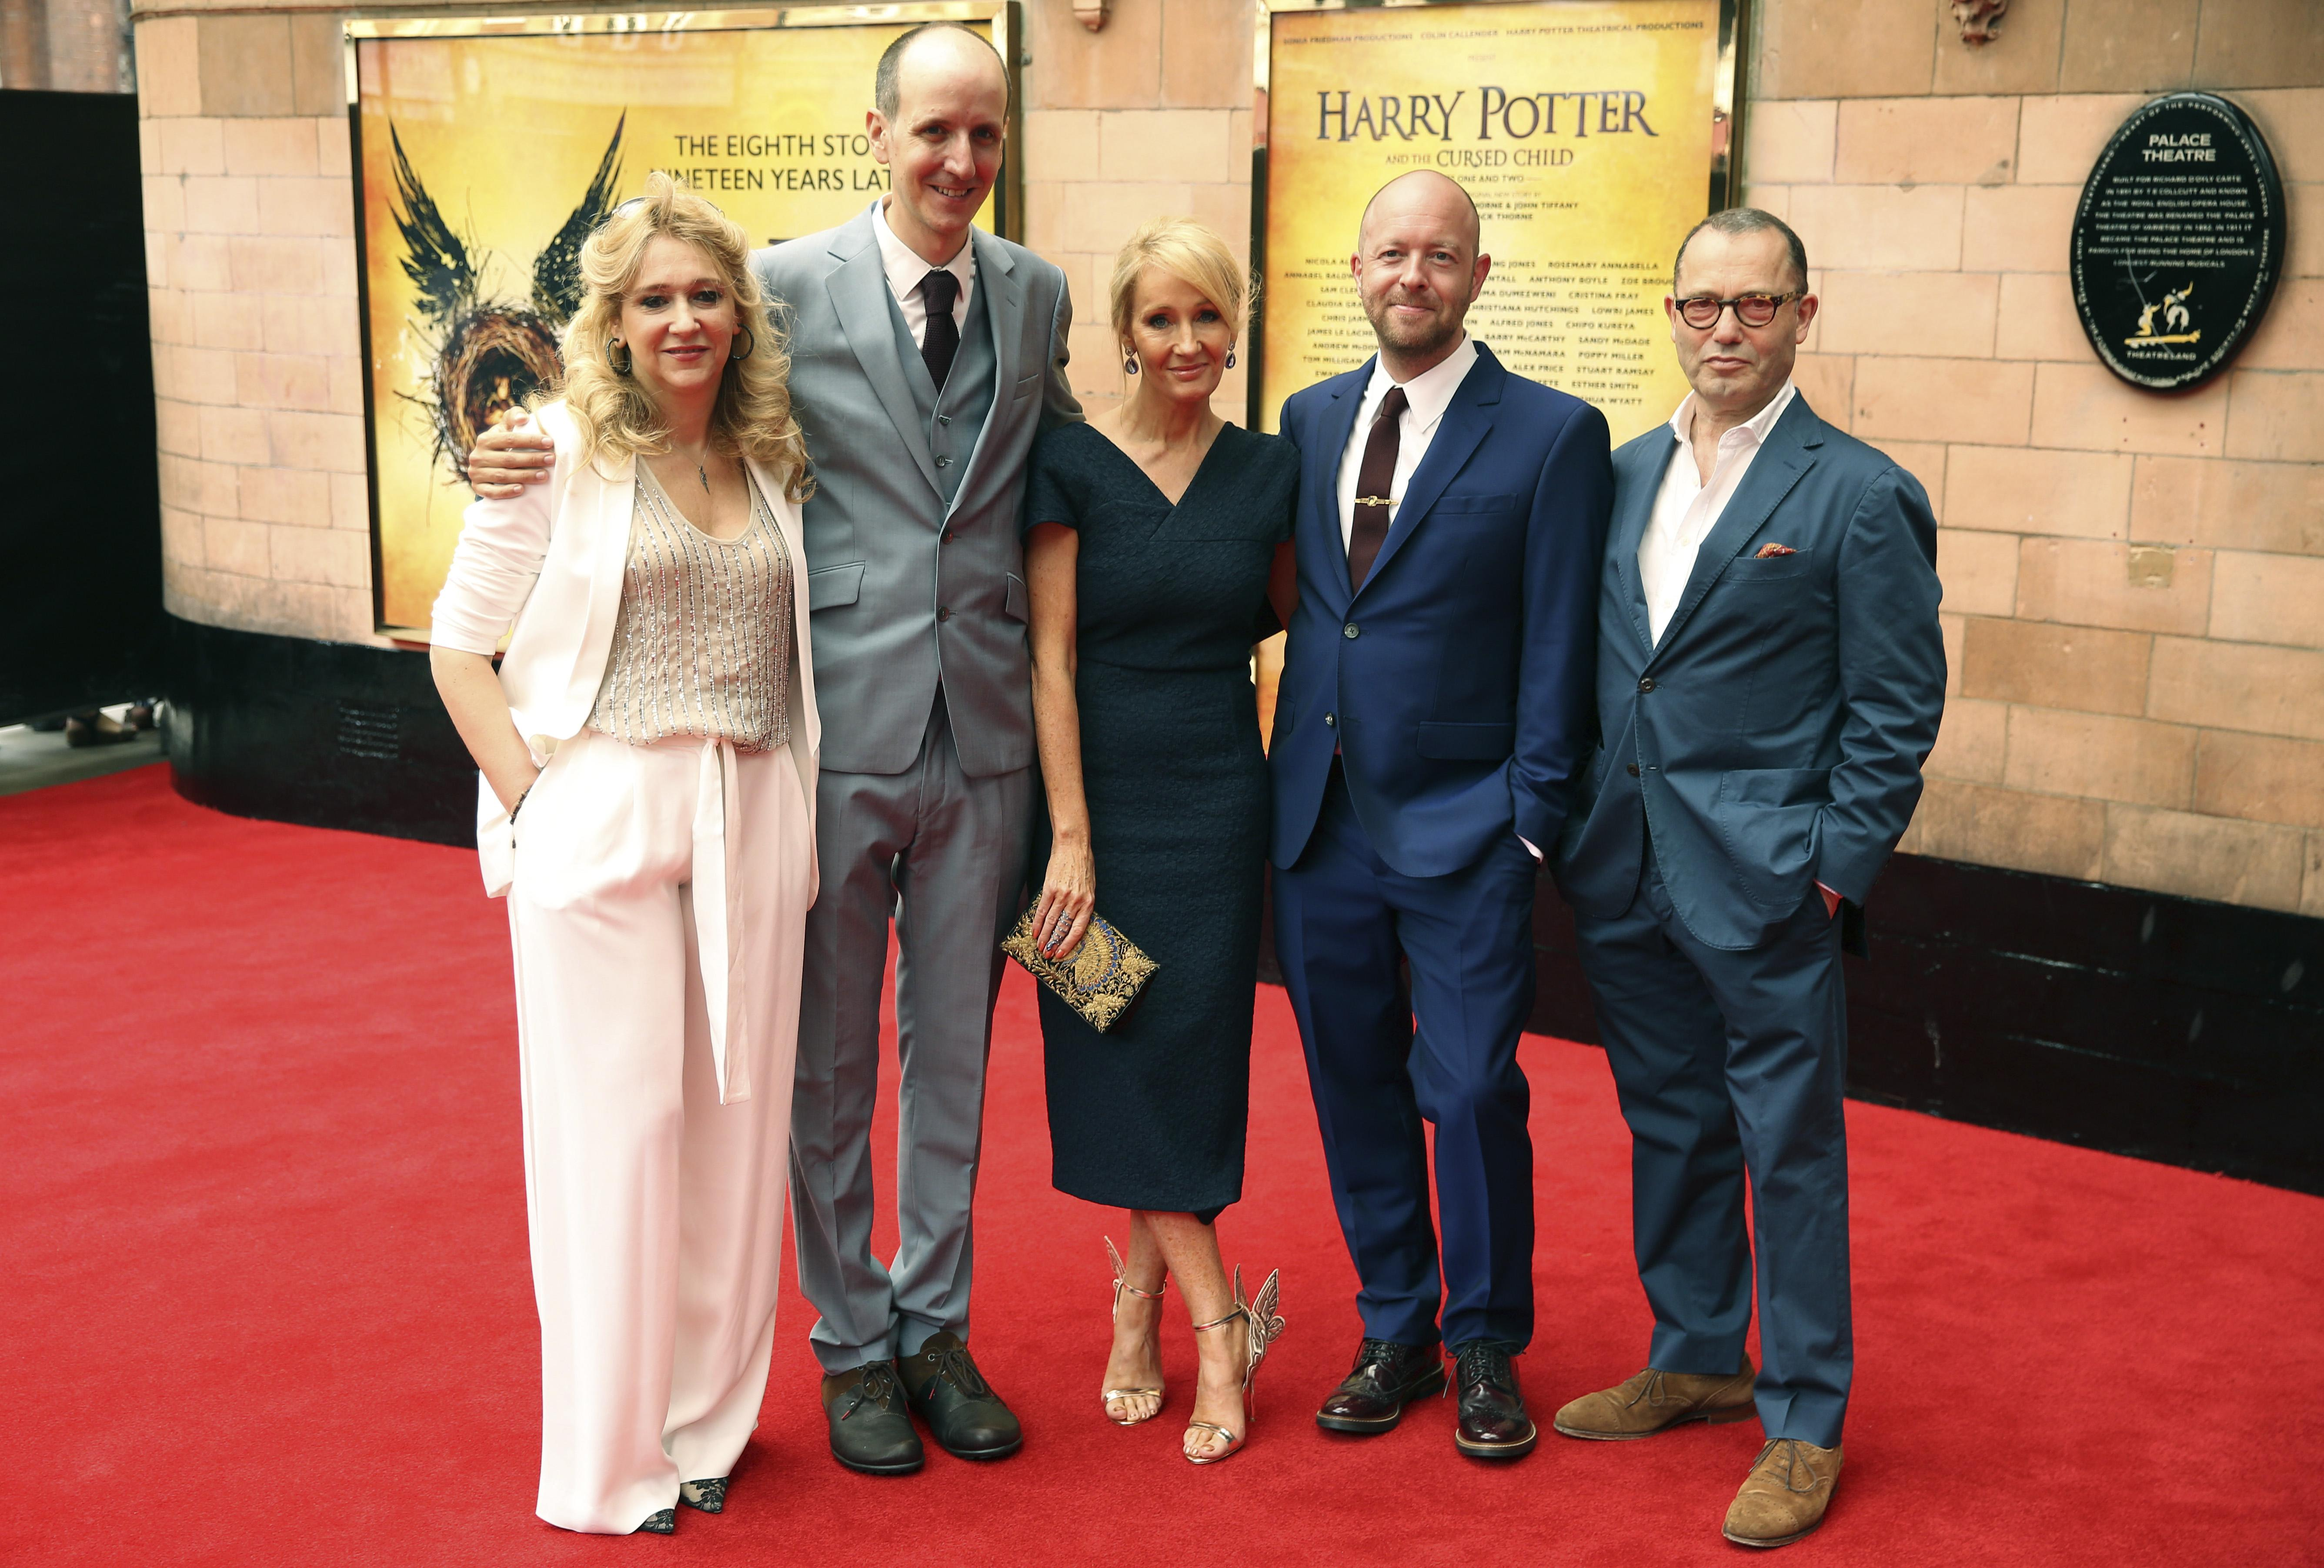 Harry Potter Opening Gala